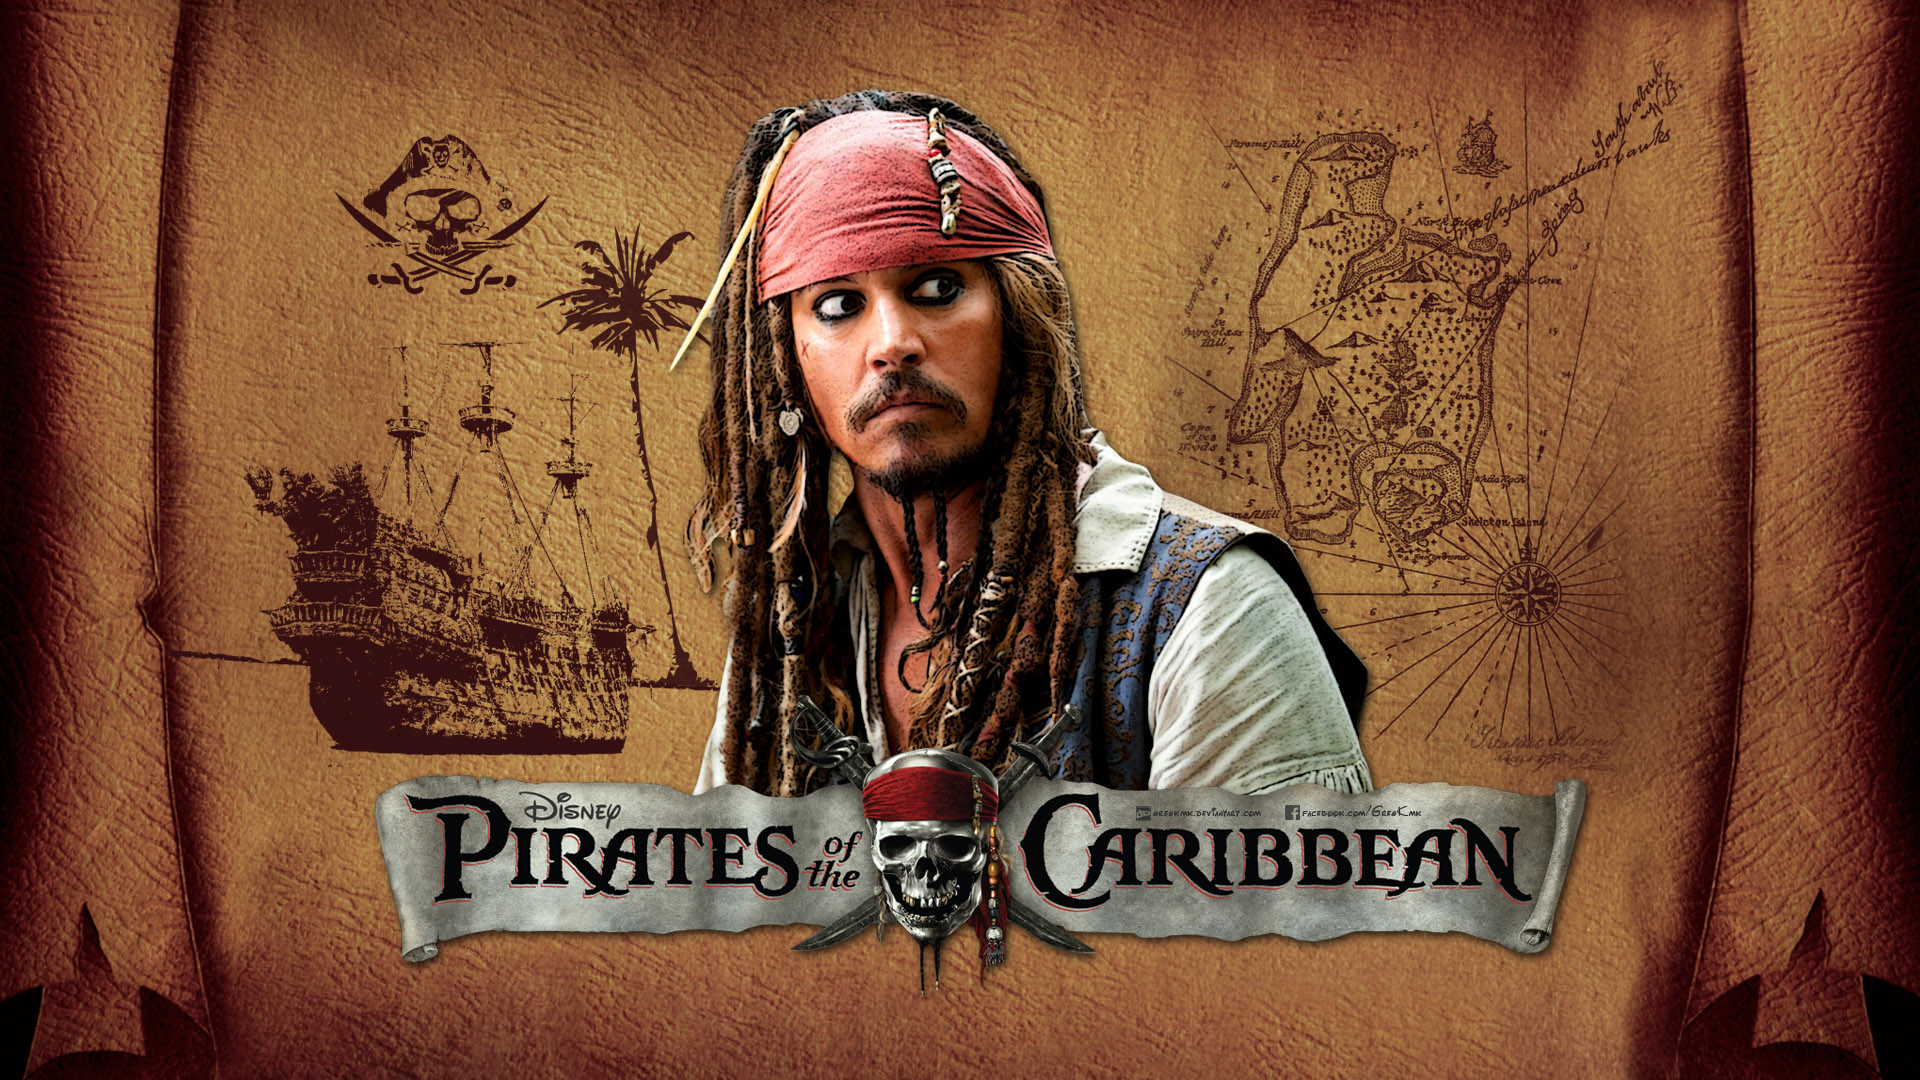 … Pirates of the Caribbean Wallpaper by GregKmk